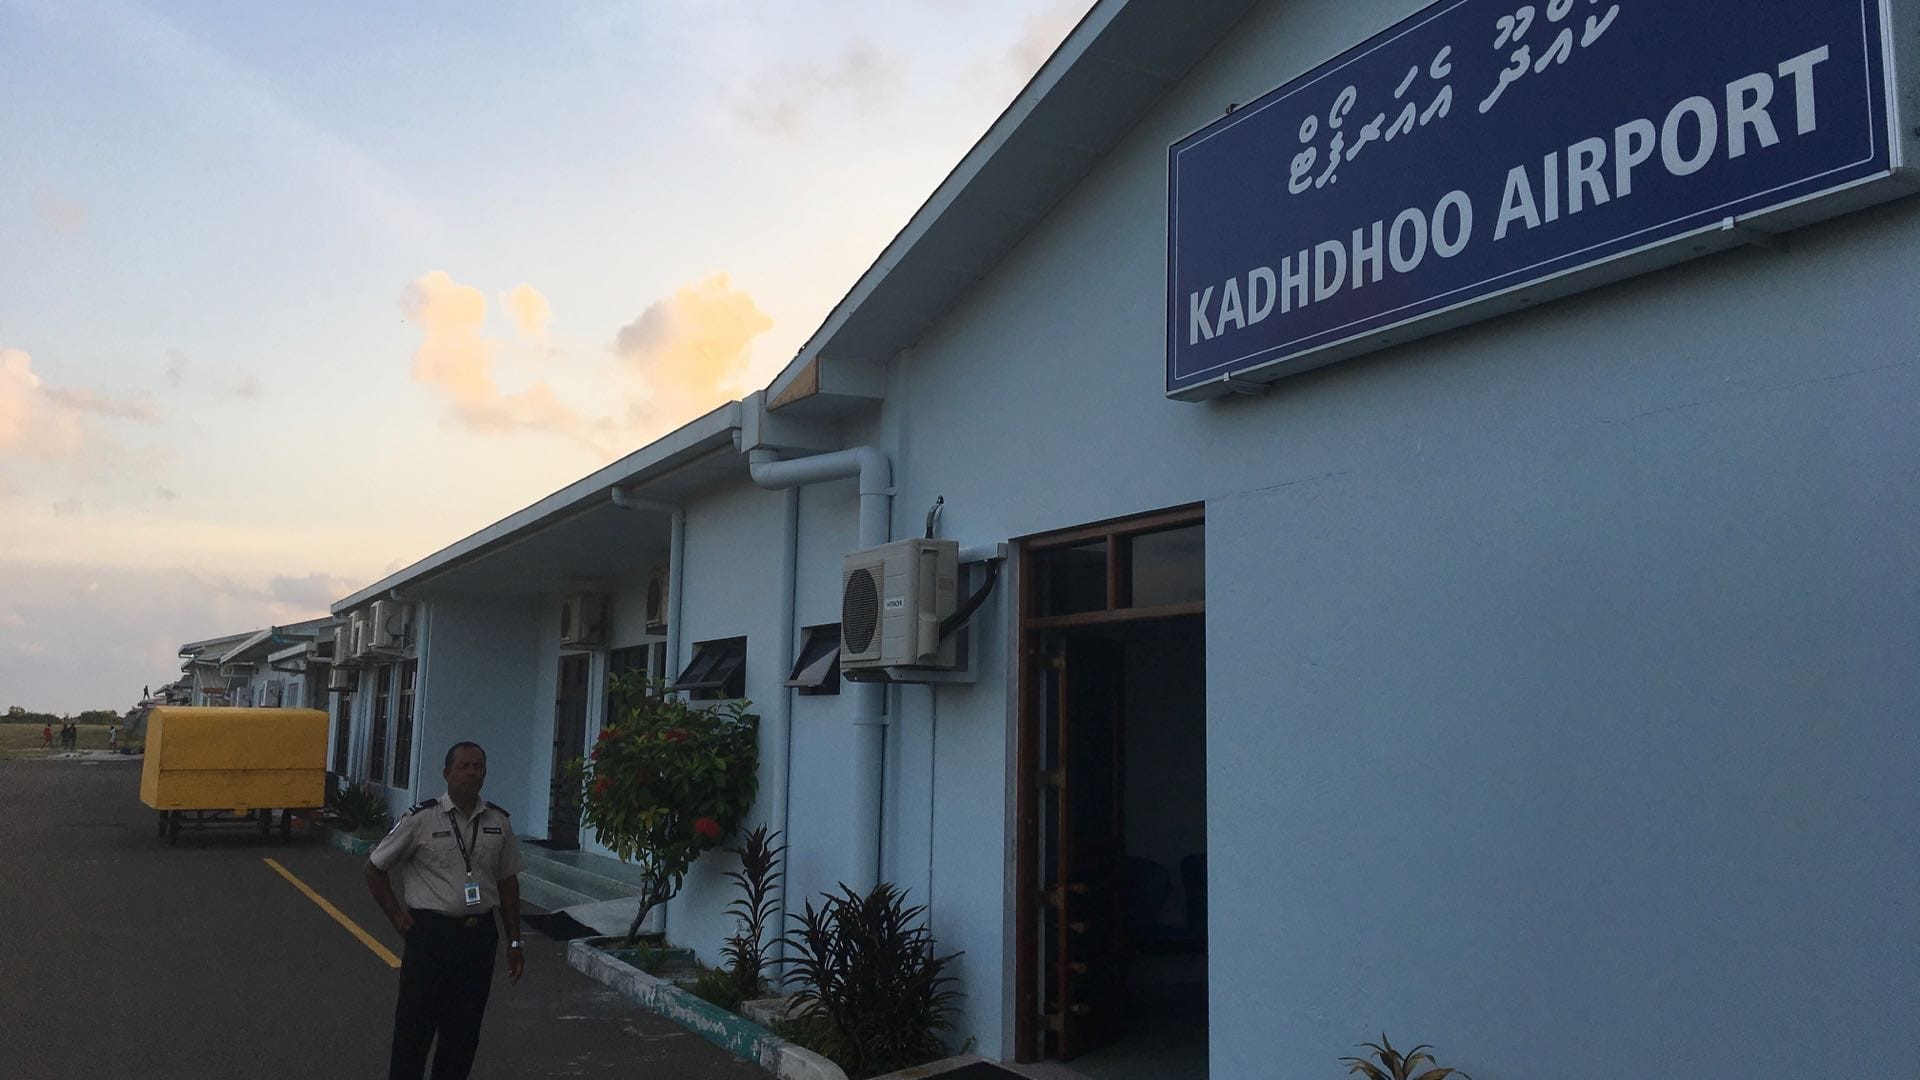 divemood emperor orion dive trip kadhdhoo airport